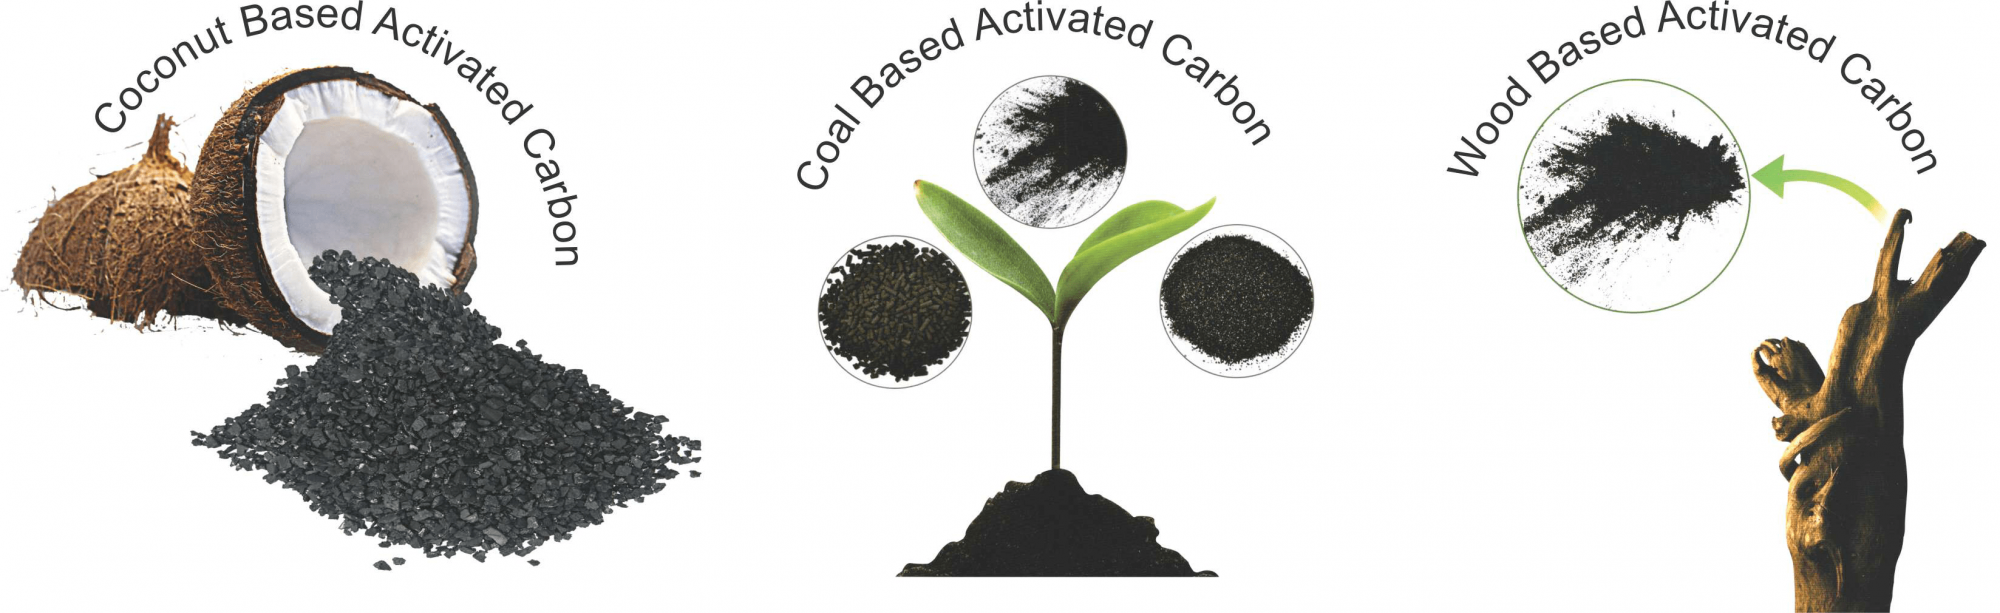 Puracarb - Activated Carbon-min